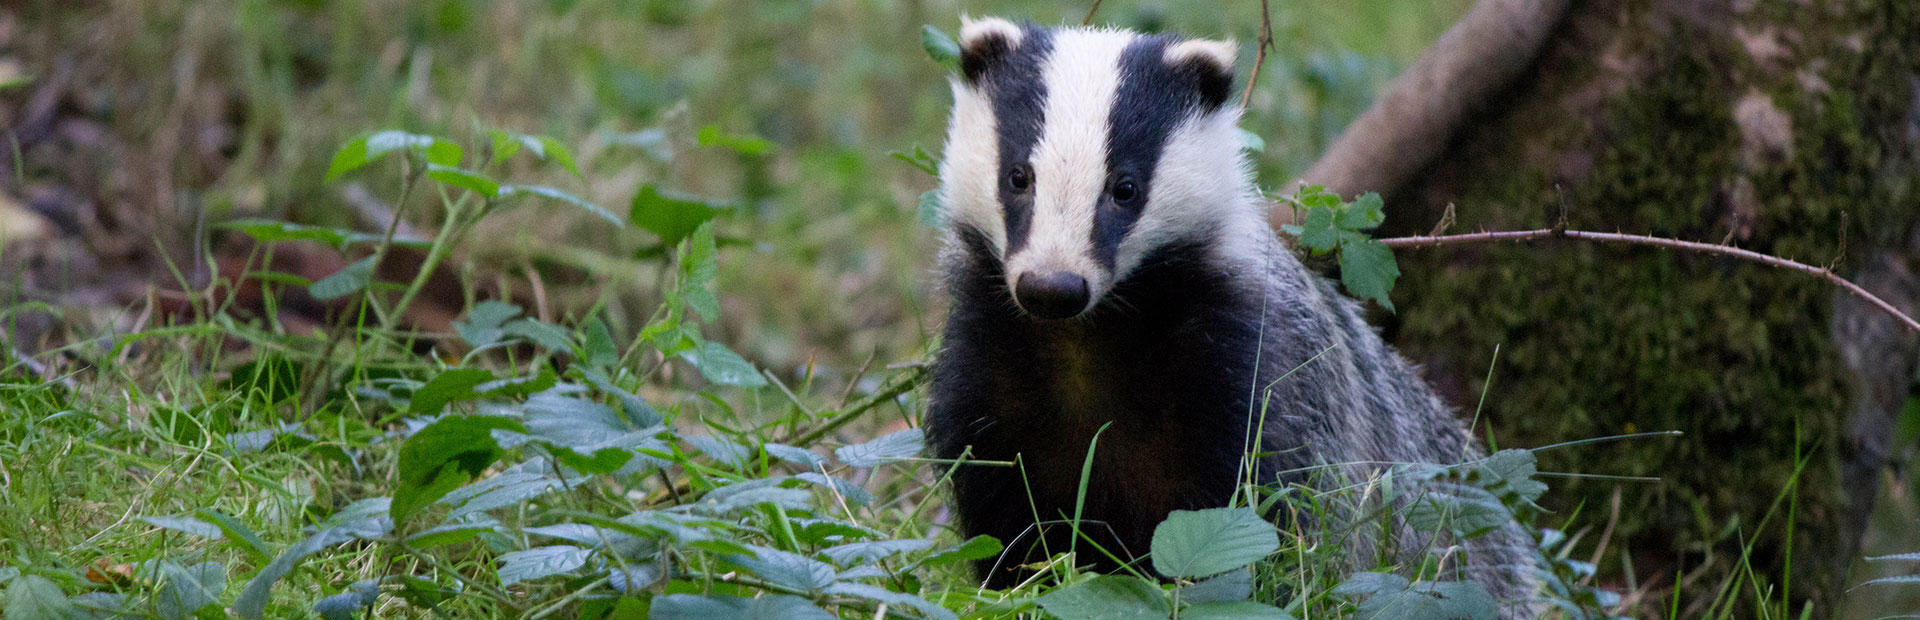 devon-badger-exploring